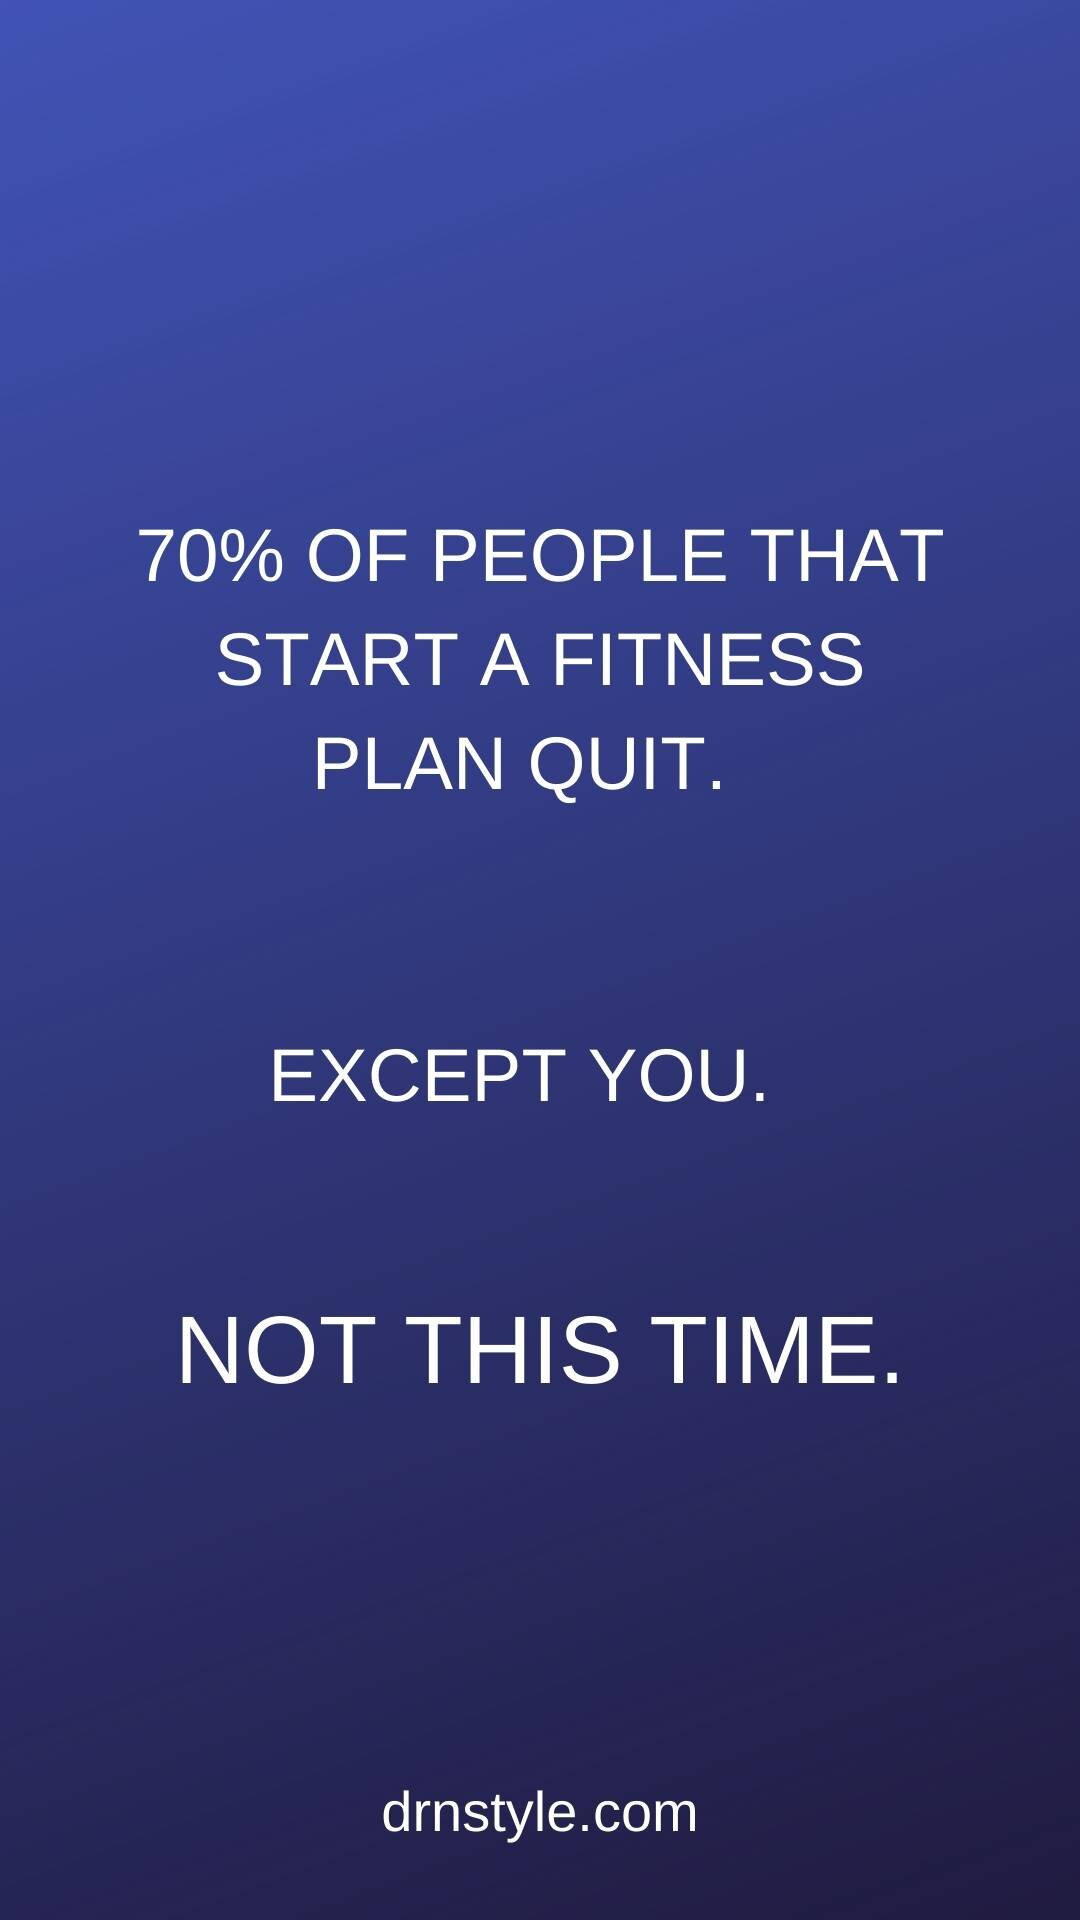 70% of people who start a fitness plan quit. Except you. NOT THIS TIME.